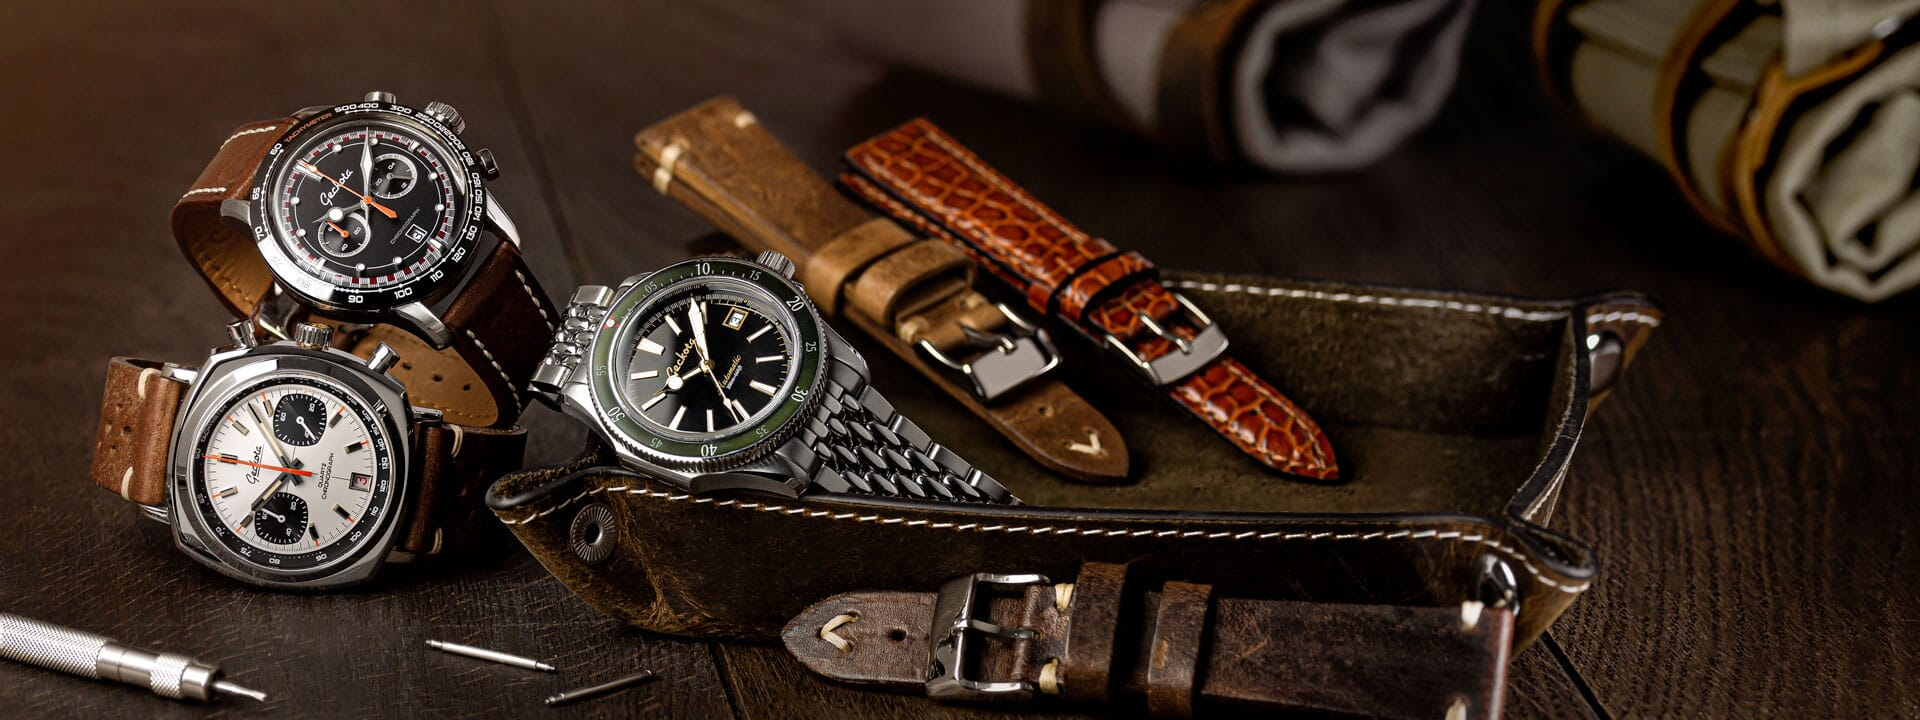 Save 20% on All Geckota Watches Today!